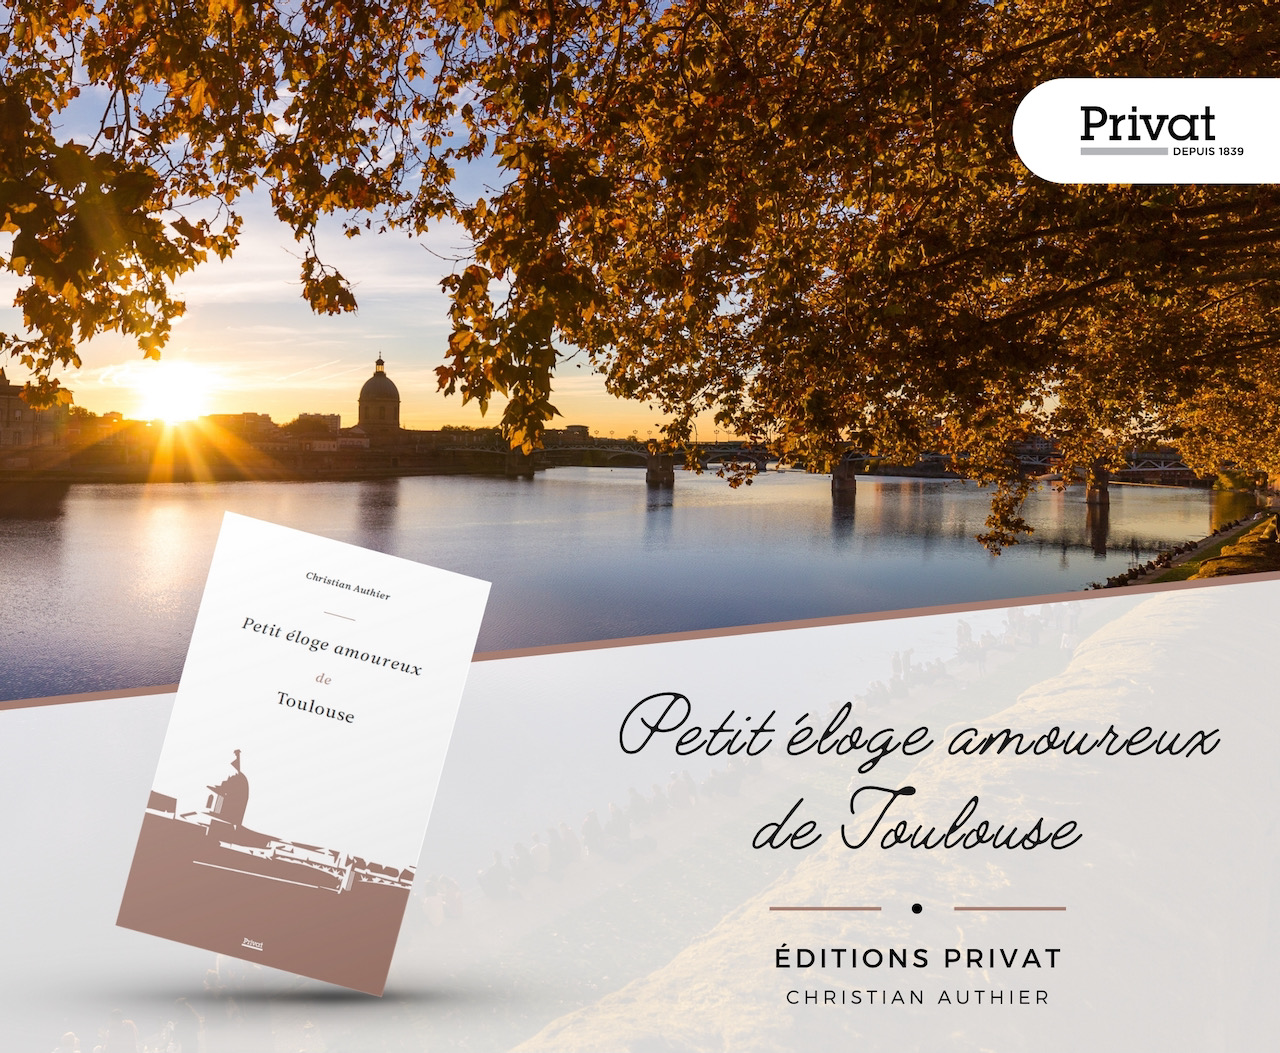 Editions Privat